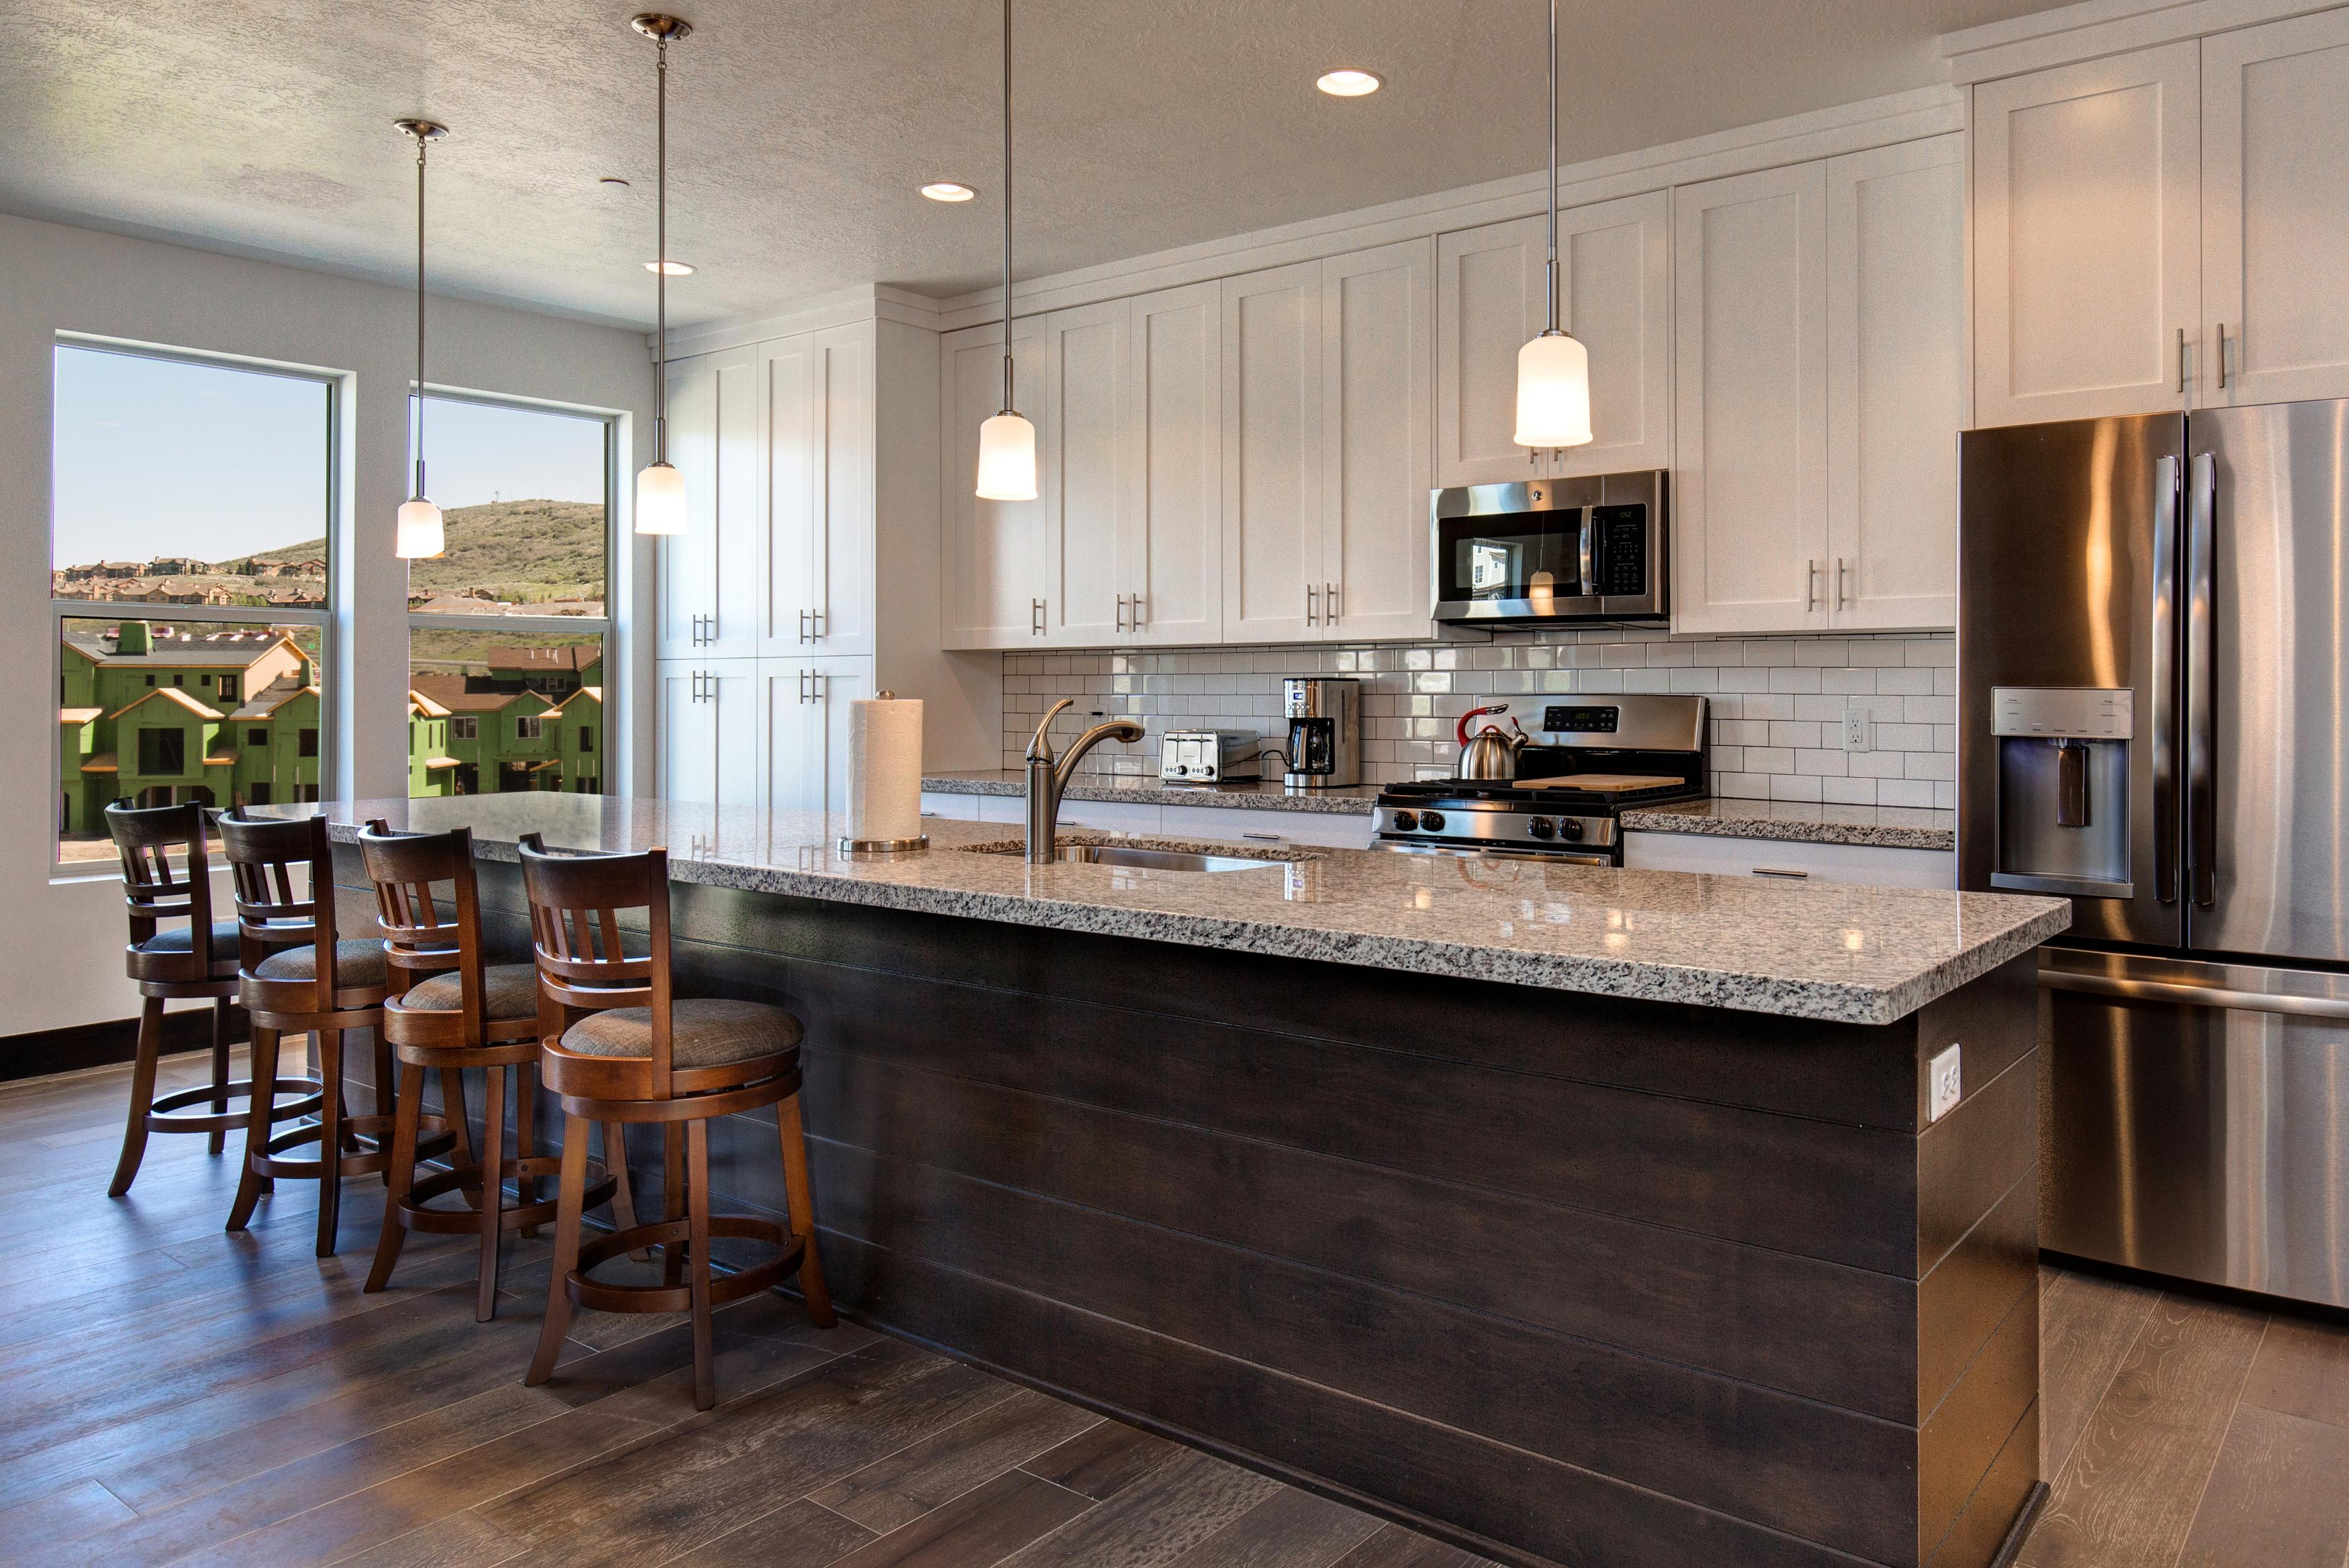 The gourmet kitchen features stainless appliances, granite counters, and a gas range.